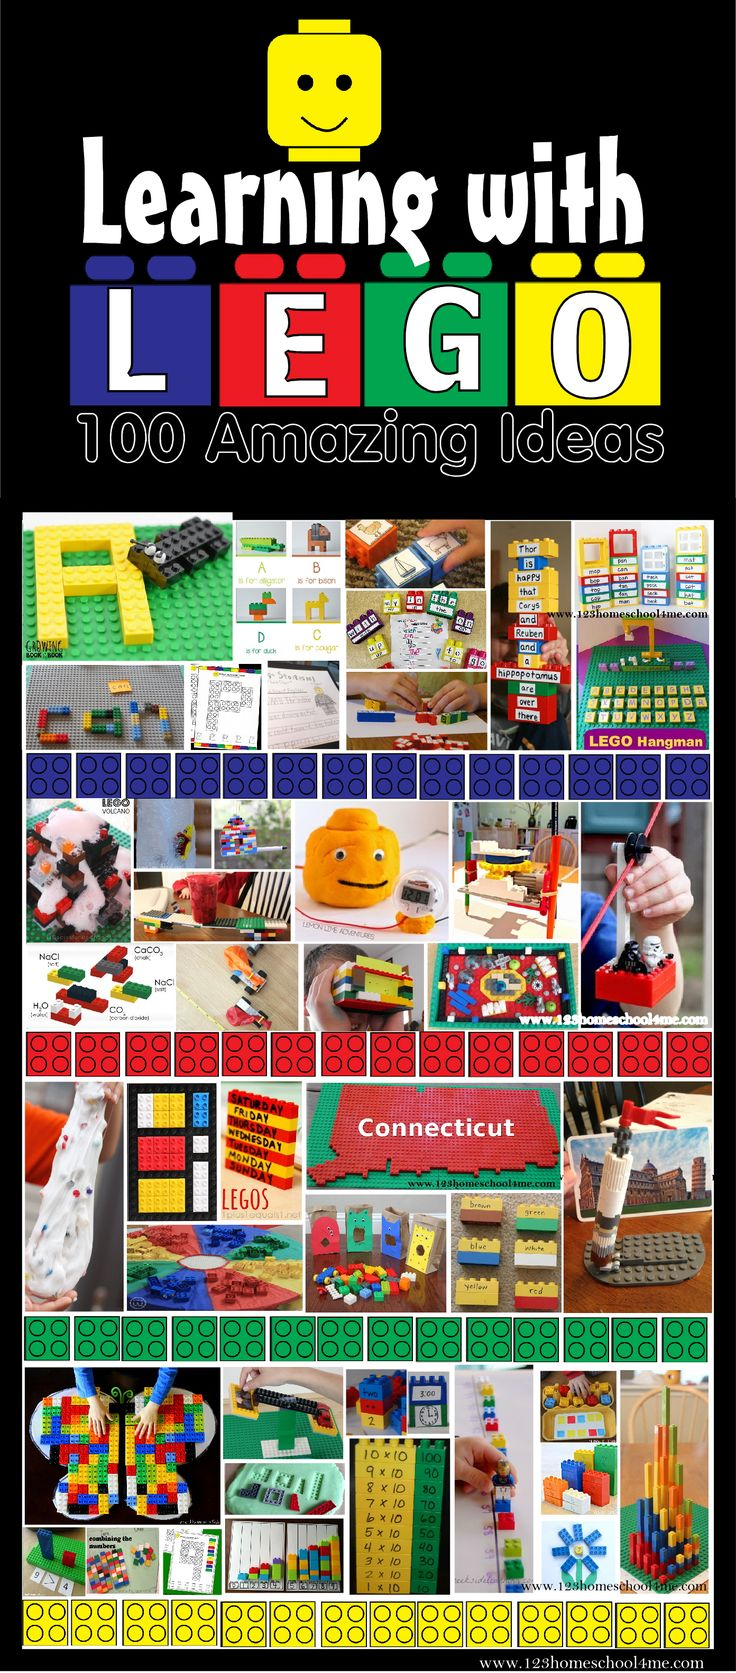 Helping Your Child Learn Science (PDF)